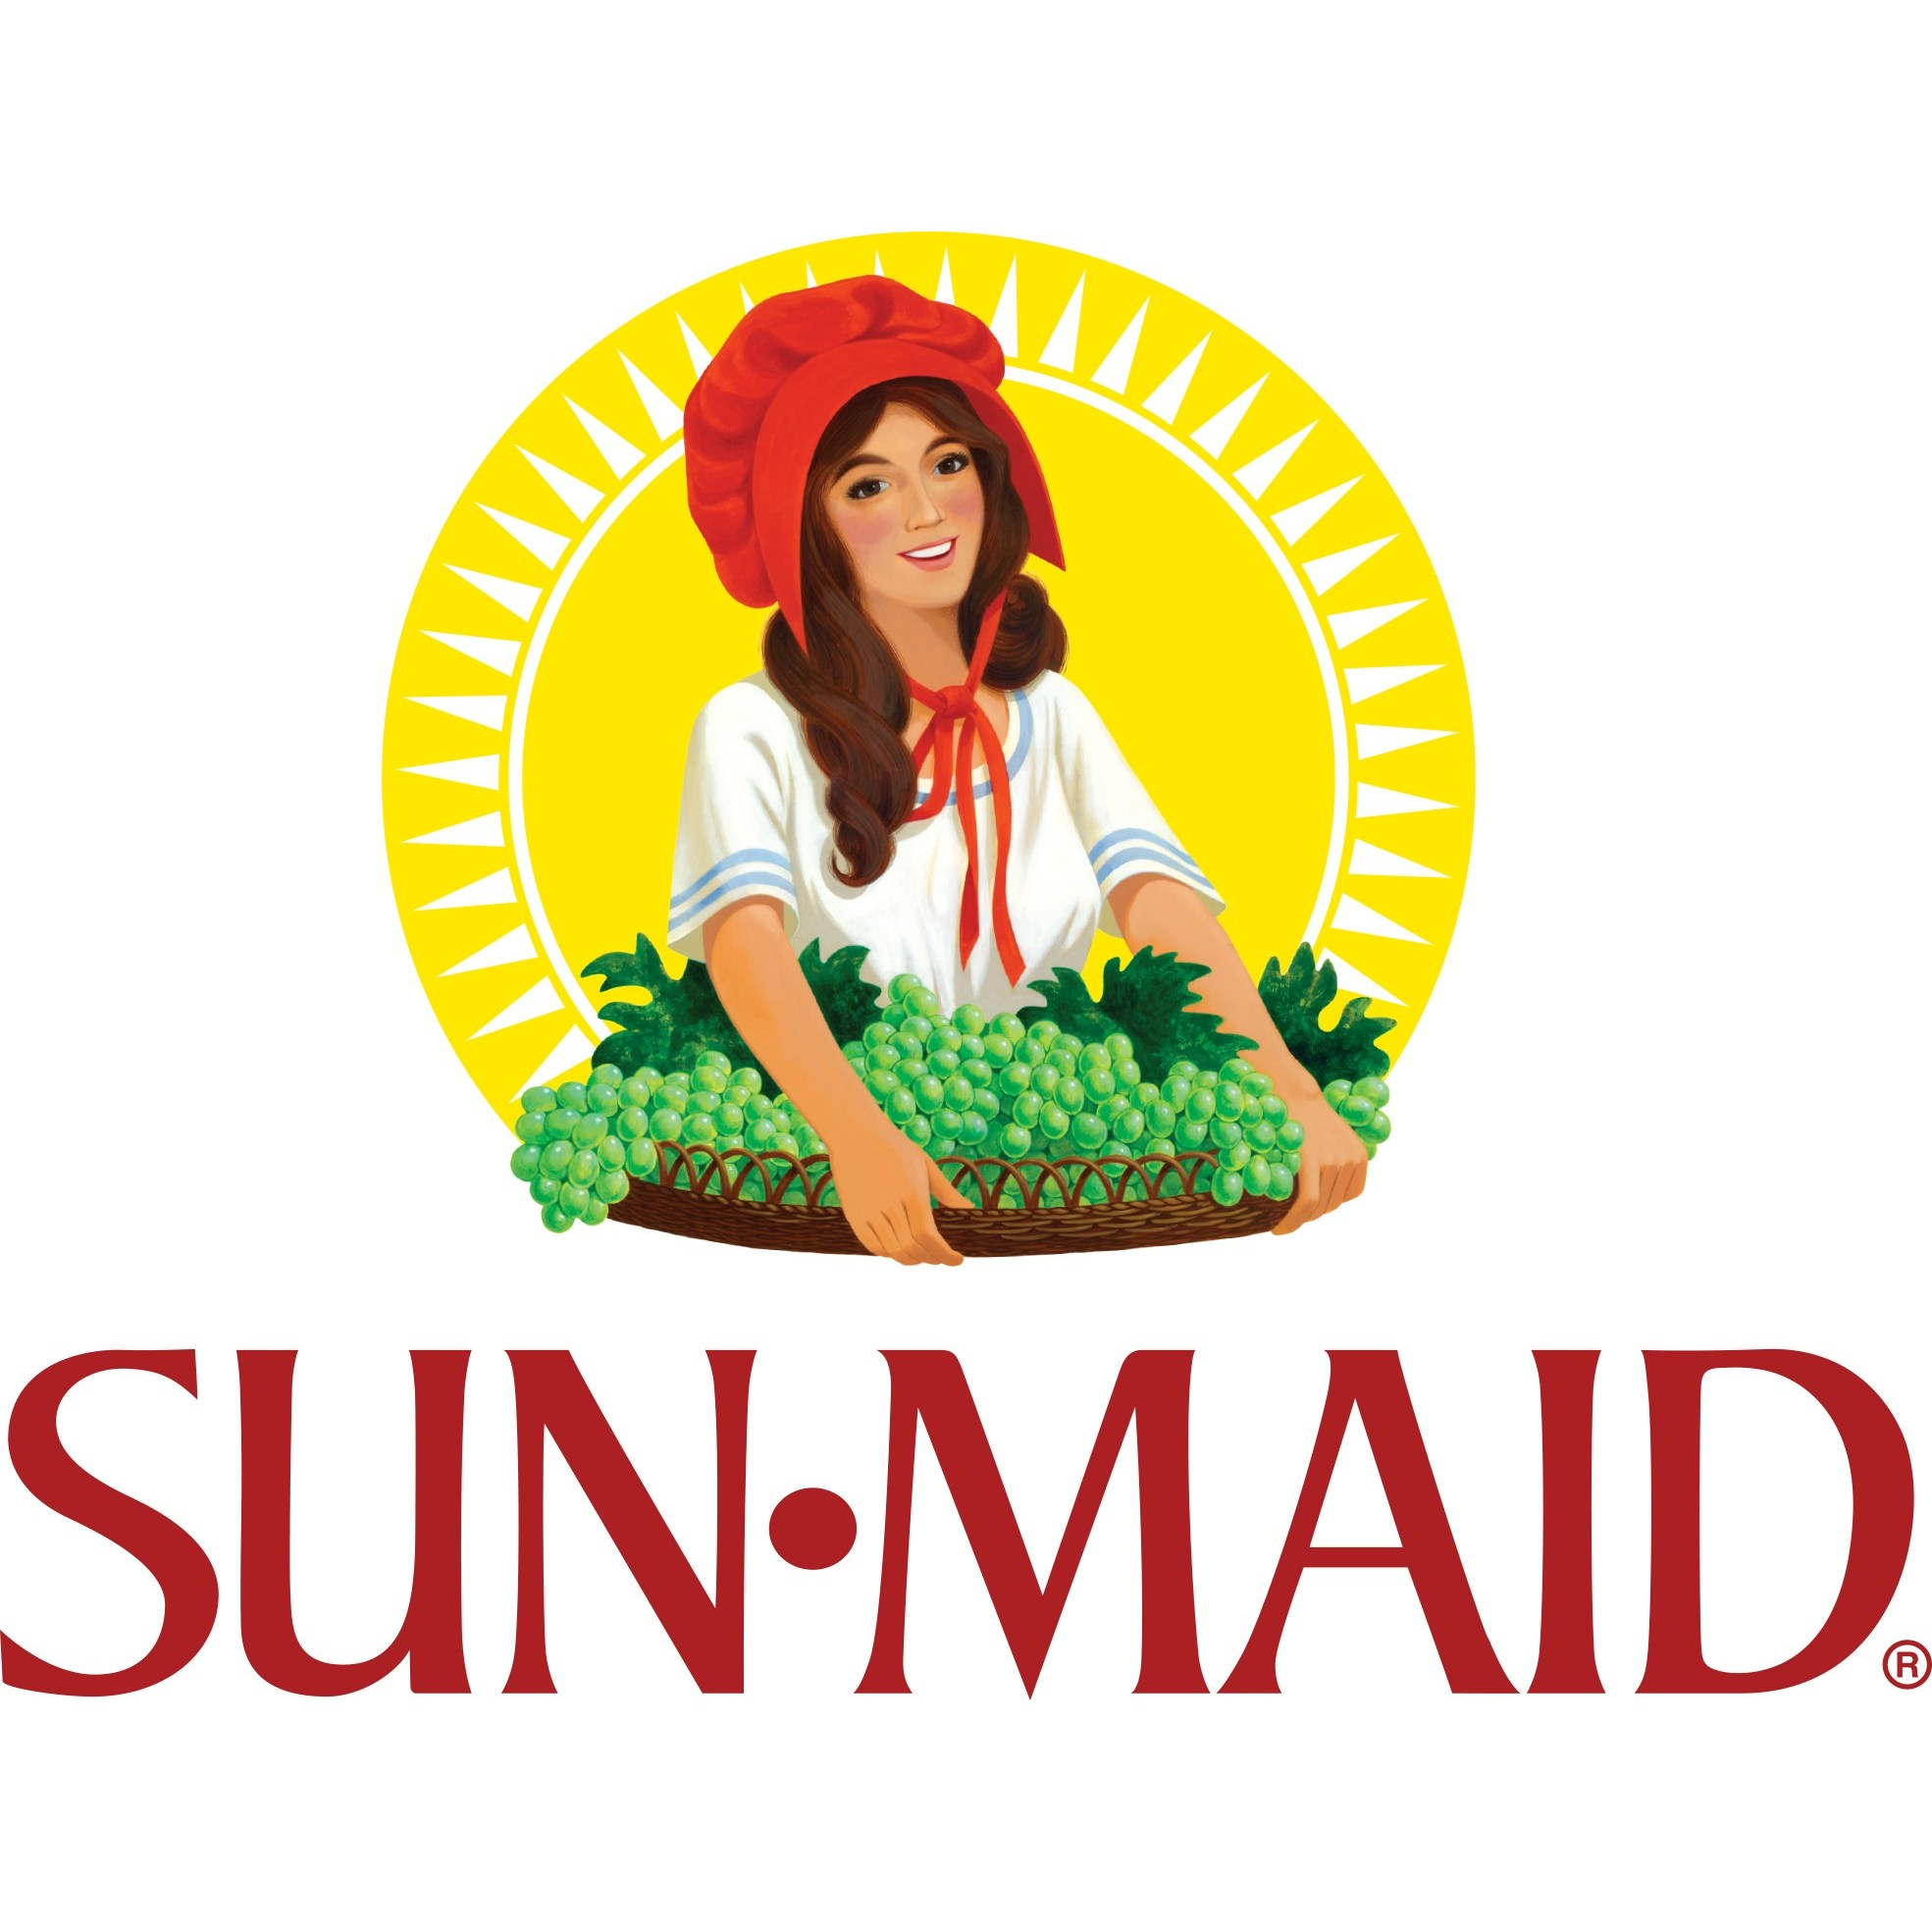 Sun-Maid Growers logo